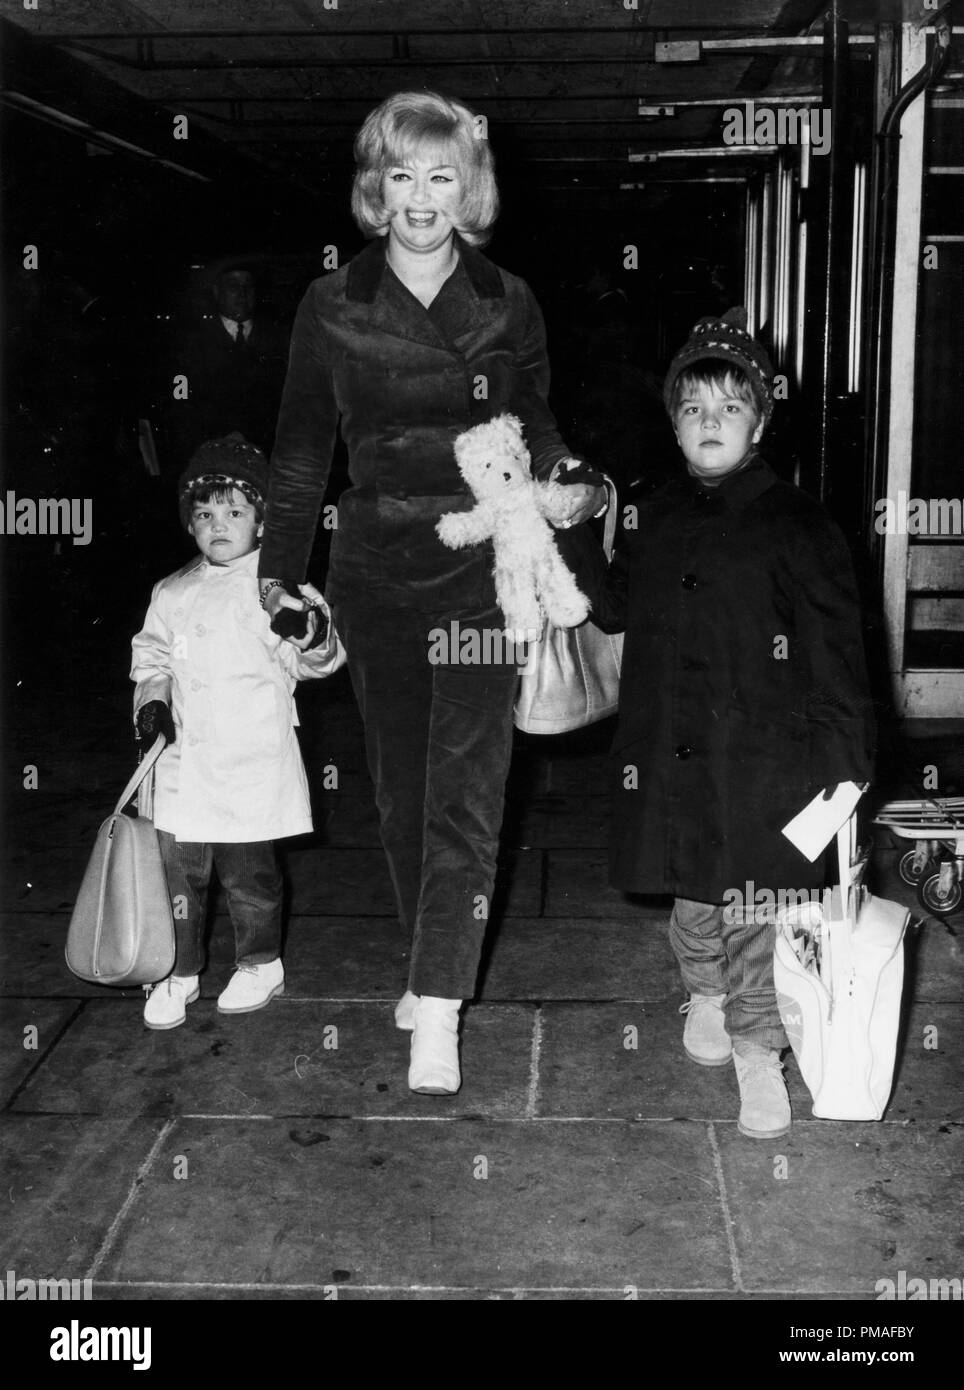 diana dors and her children mark and gary 1966 c jrc the hollywood archive all rights reserved file reference 32633 462tha stock photo alamy https www alamy com diana dors and her children mark and gary 1966 jrc the hollywood archive all rights reserved file reference 32633 462tha image219049151 html